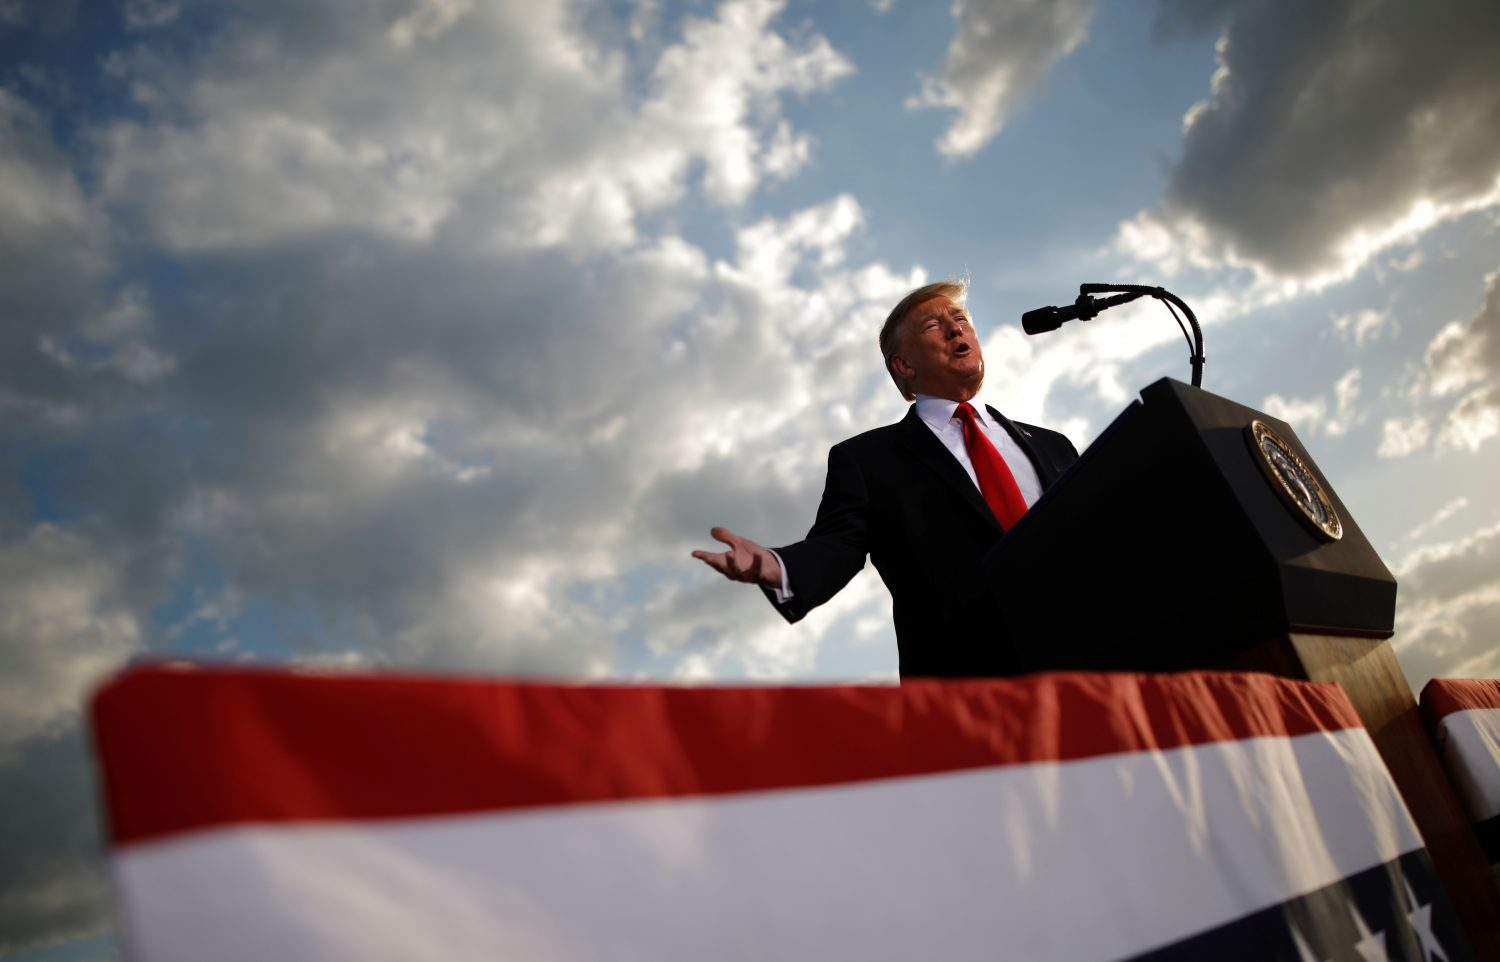 FILE PHOTO - U.S. President Donald Trump addresses a Trump 2020 re-election campaign rally in Montoursville, Pennsylvania, U.S. May 20, 2019.    REUTERS/Carlos Barria